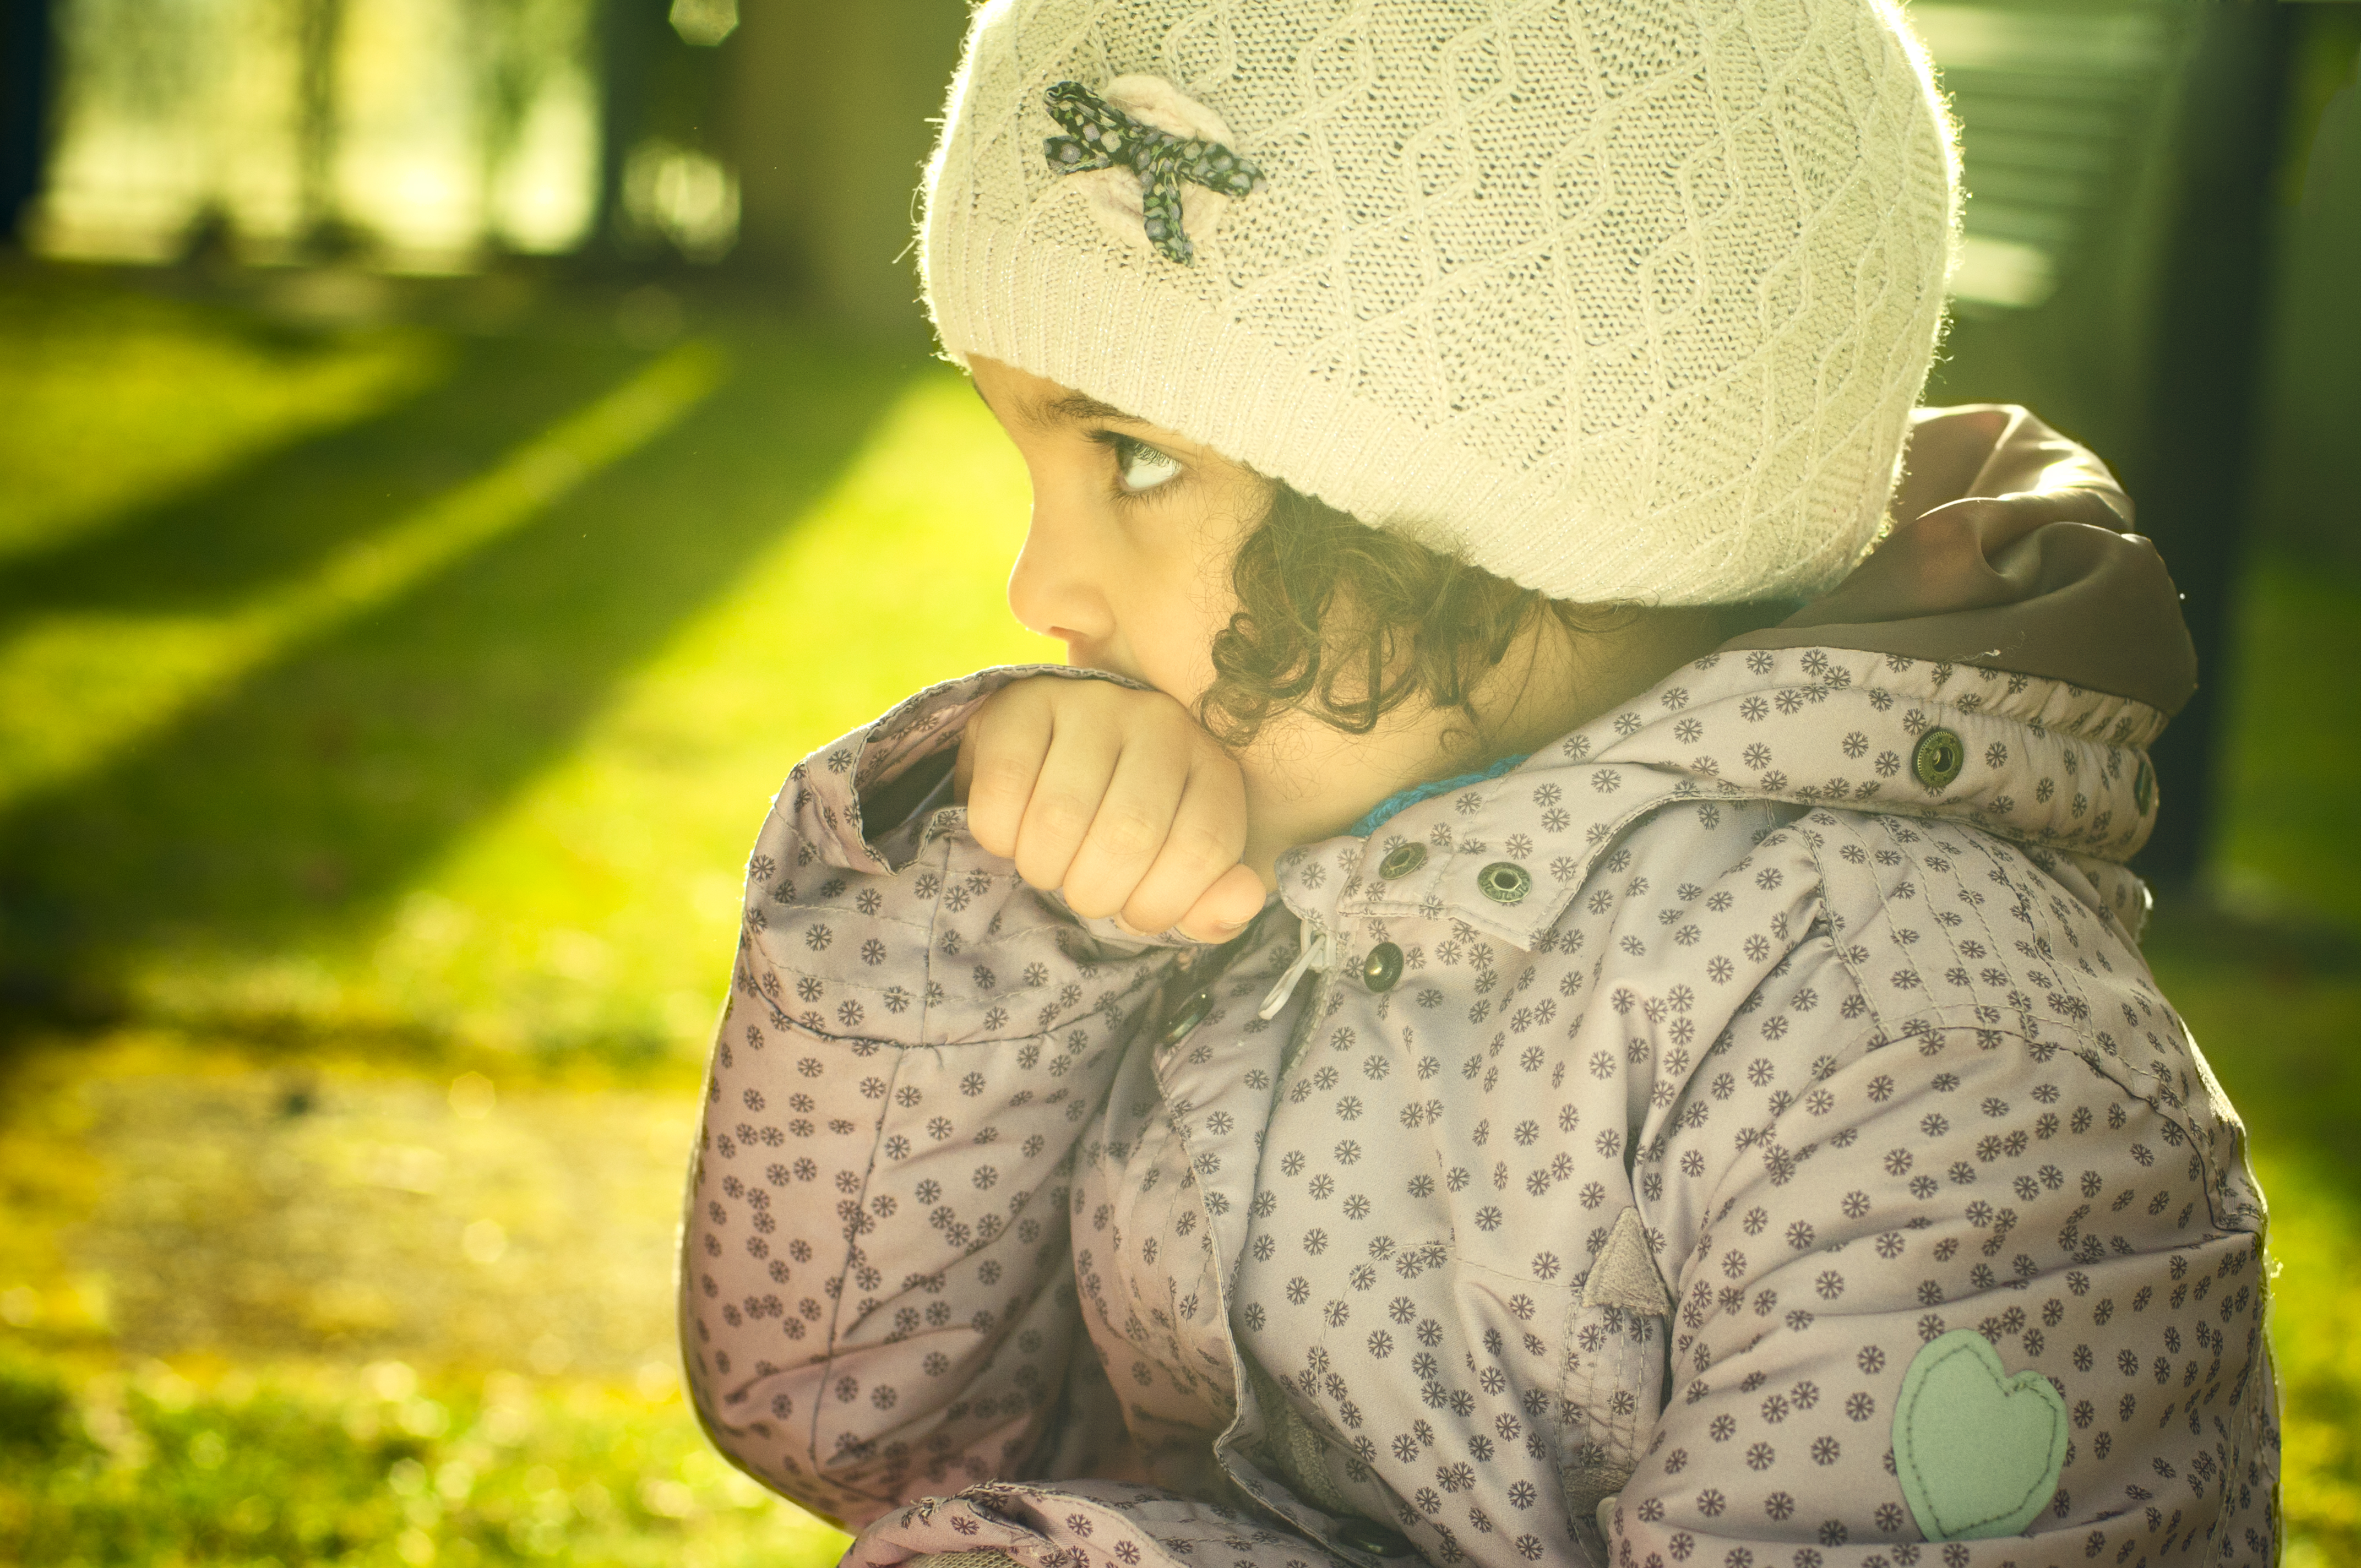 young girl biting on coat